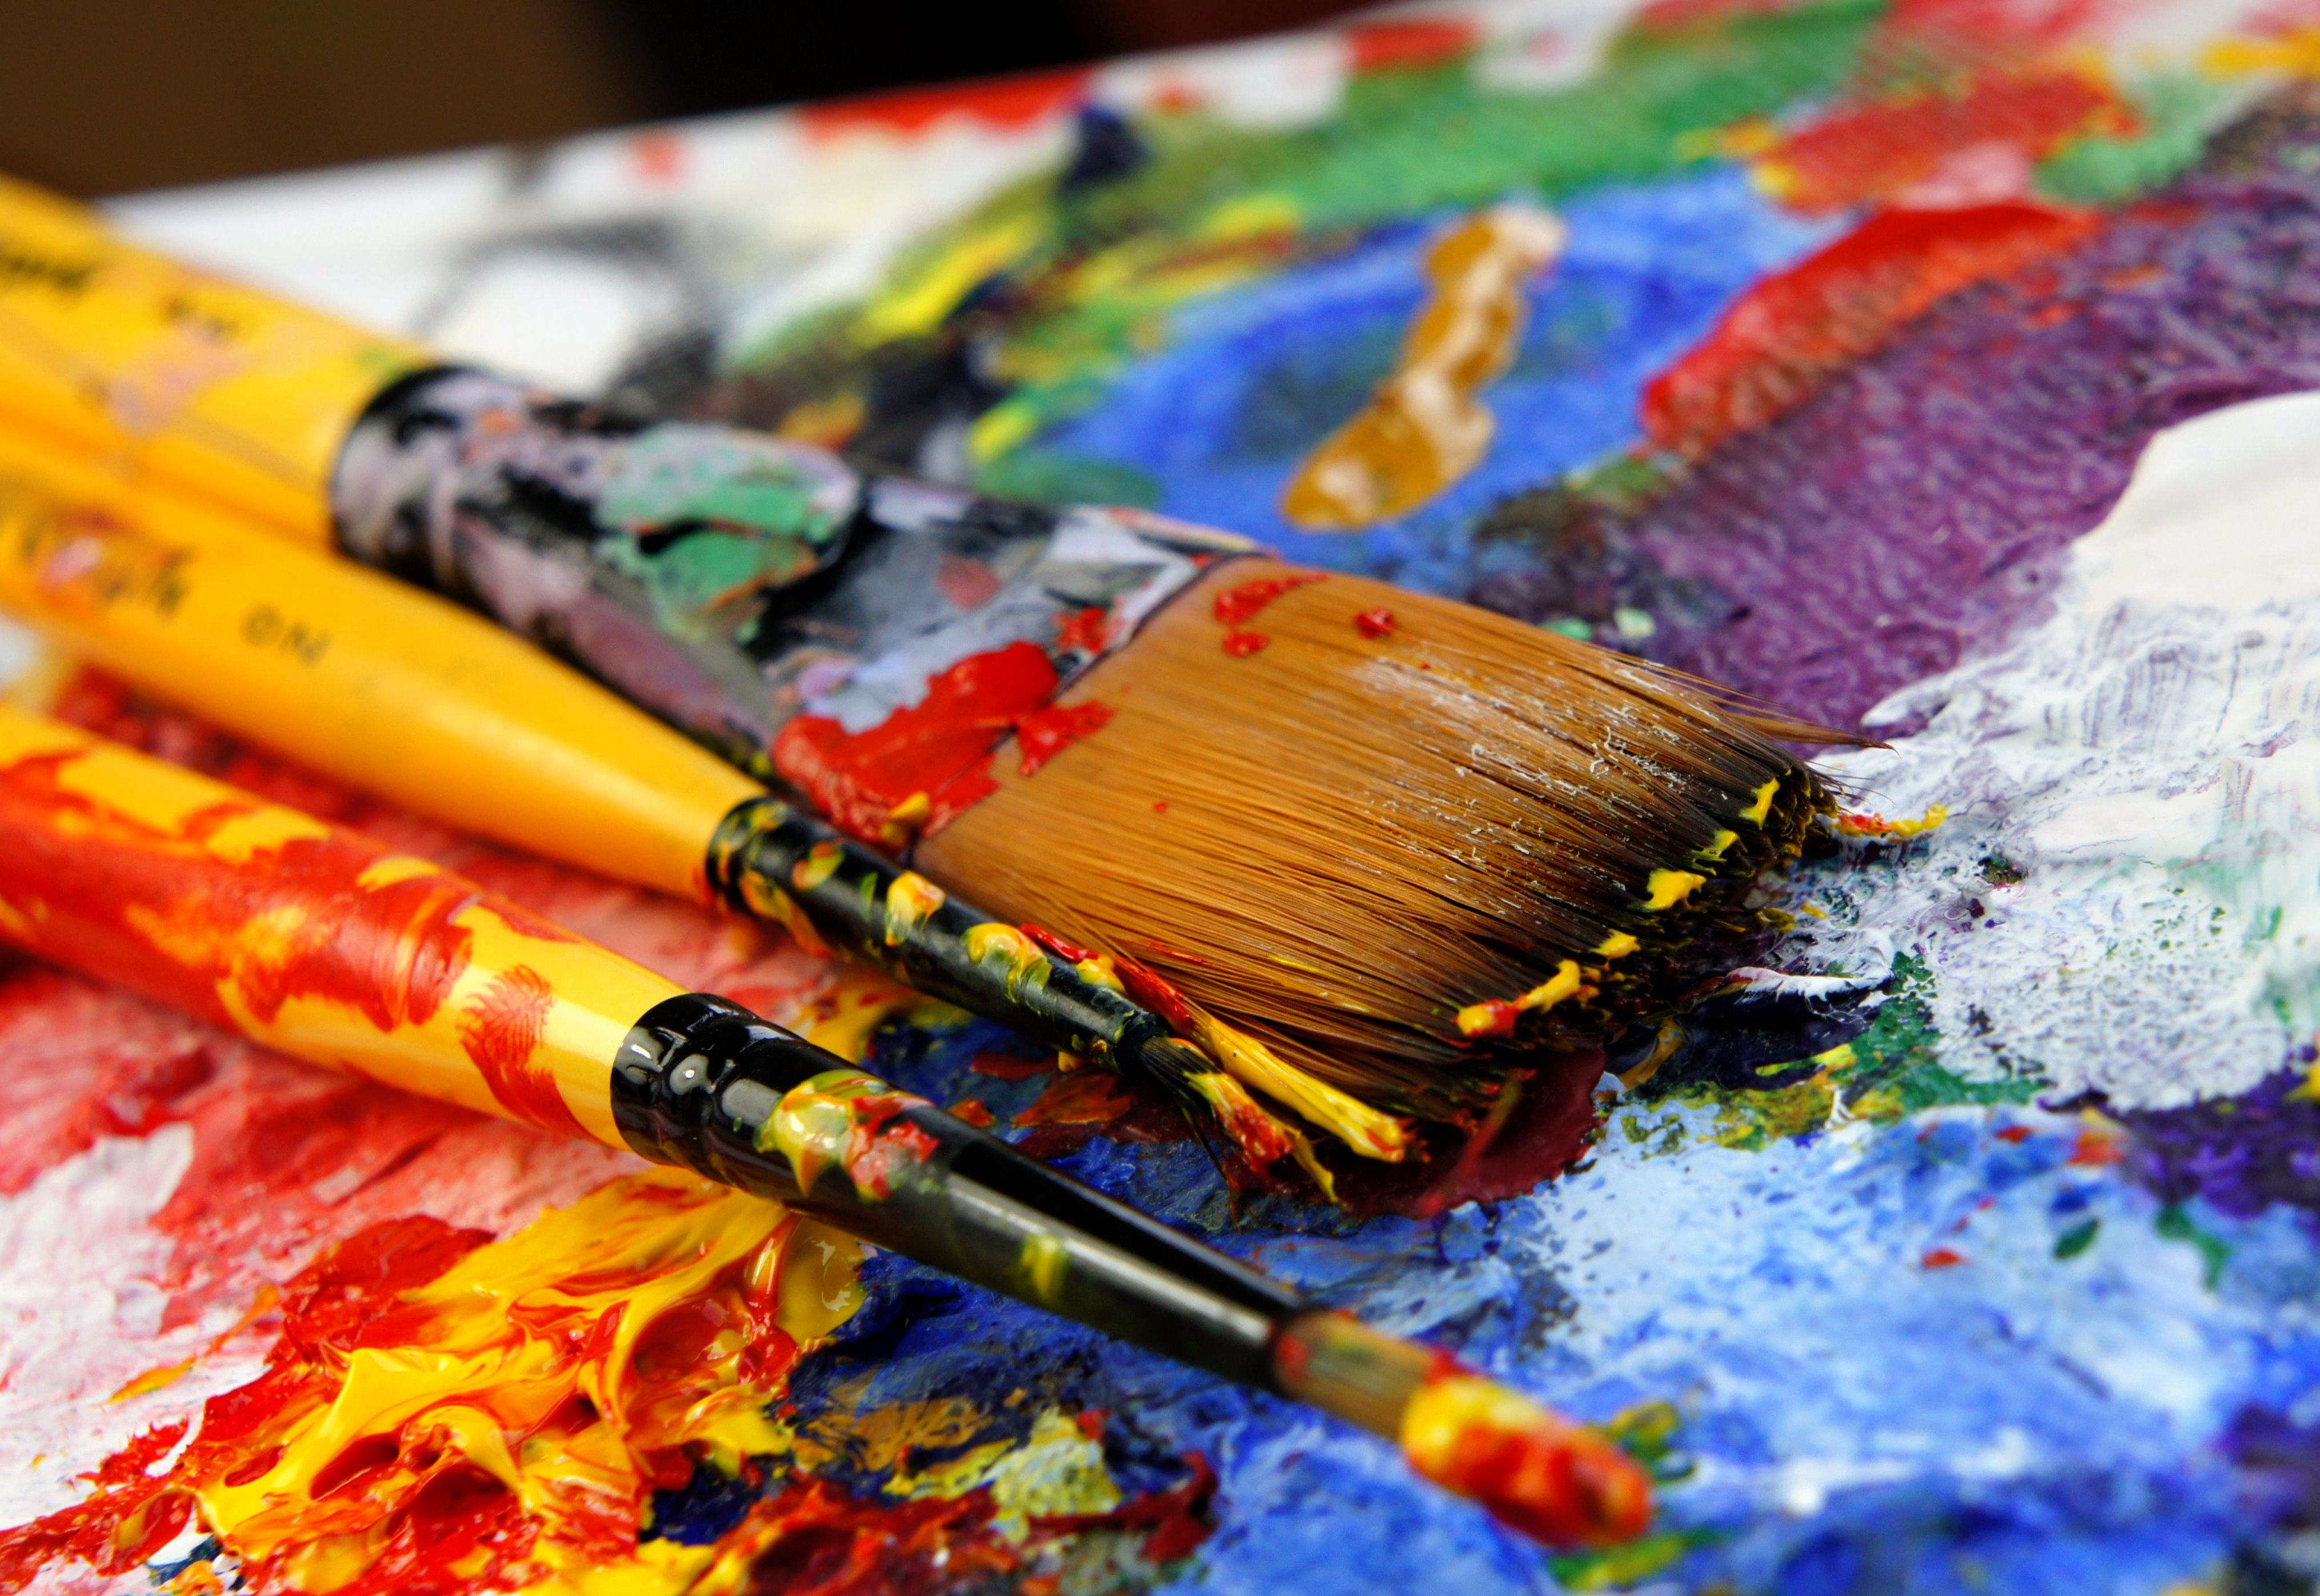 Http Www Nonprofitlawblog Com Arts Projects Charitable